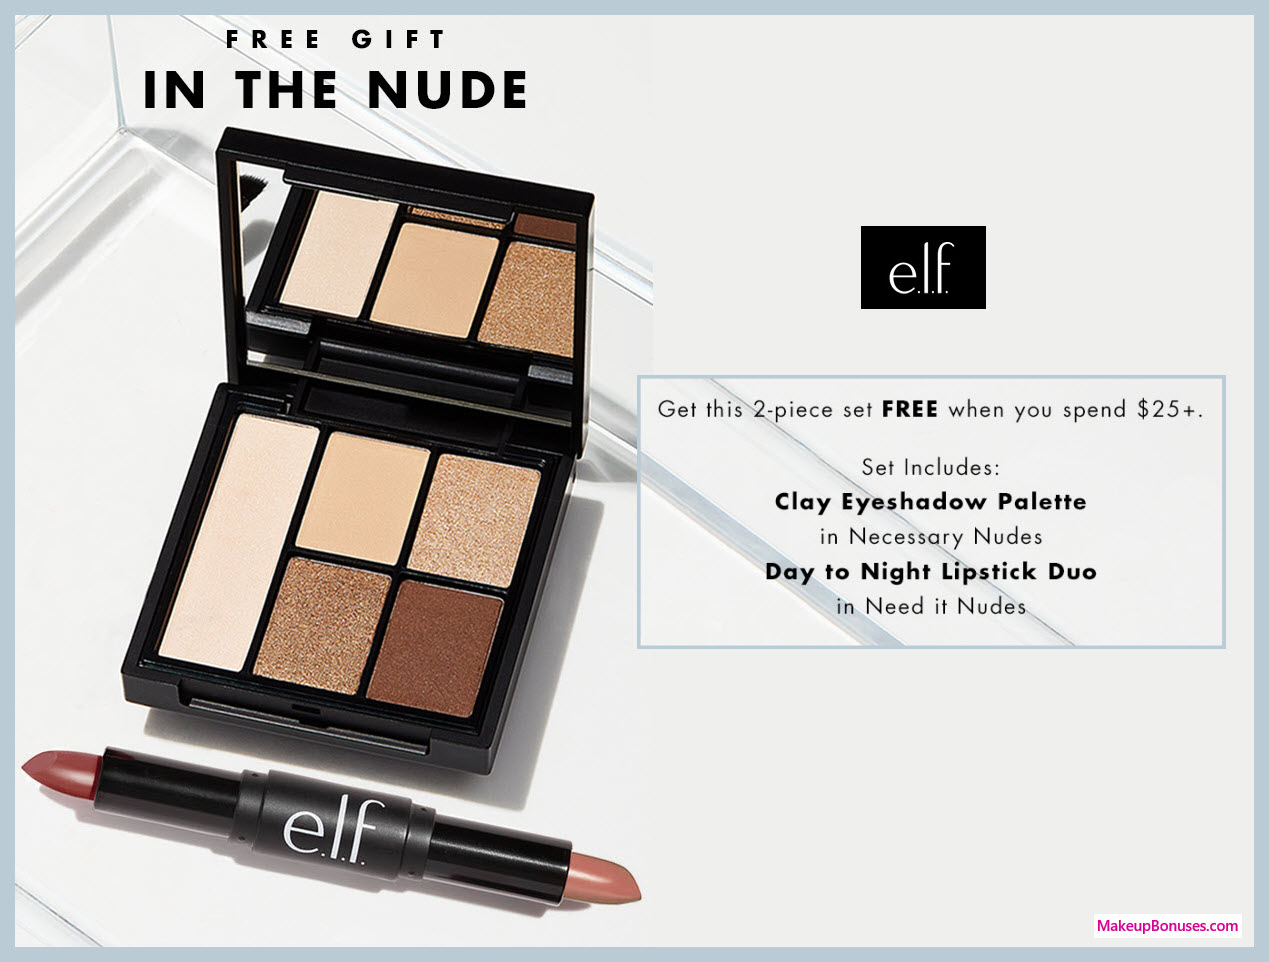 Receive a free 2-pc gift with $25 ELF Cosmetics purchase #elfcosmetics